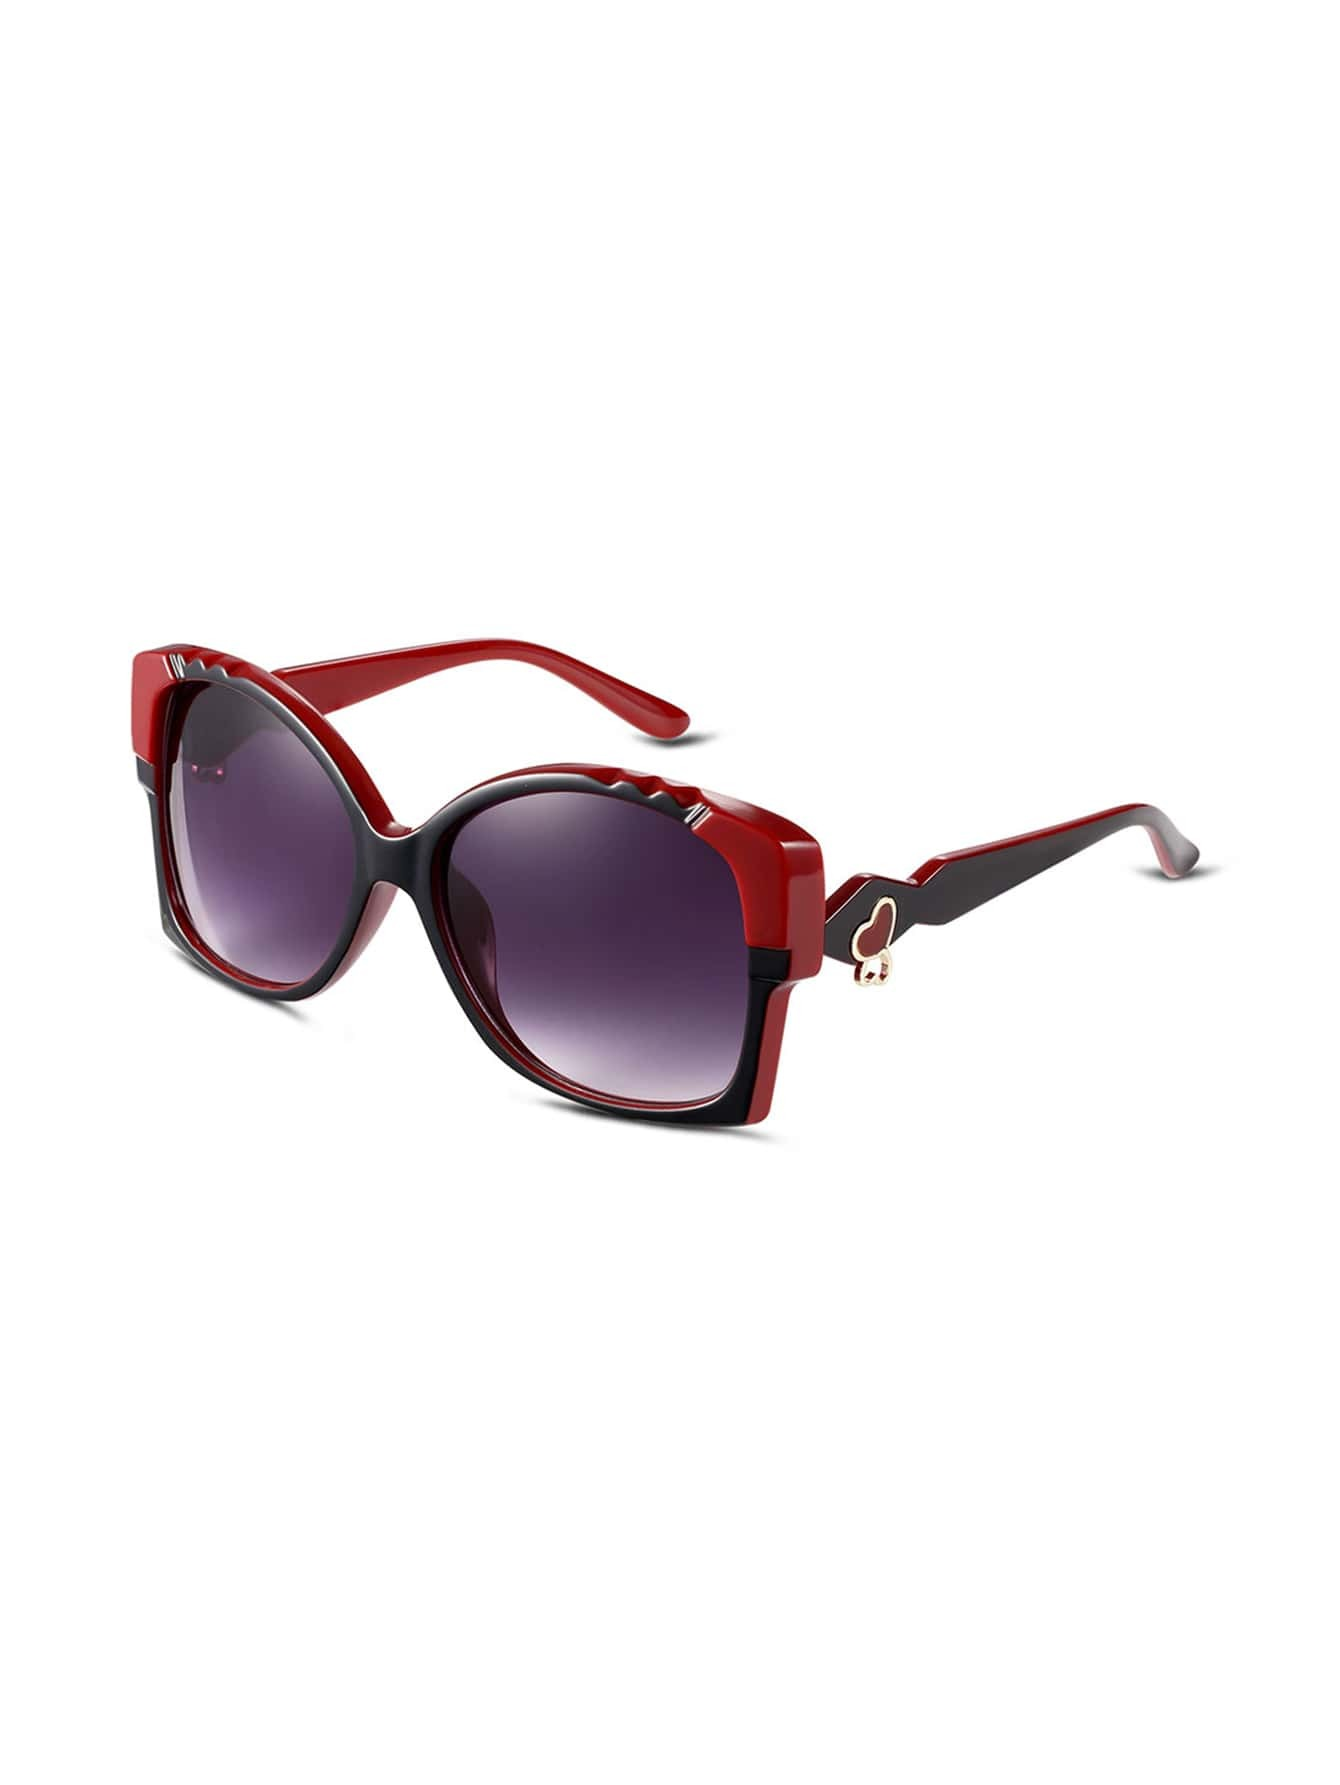 Big Red Frame Glasses : Red Geometric Frame Large Lens Sunglasses -SheIn(Sheinside)